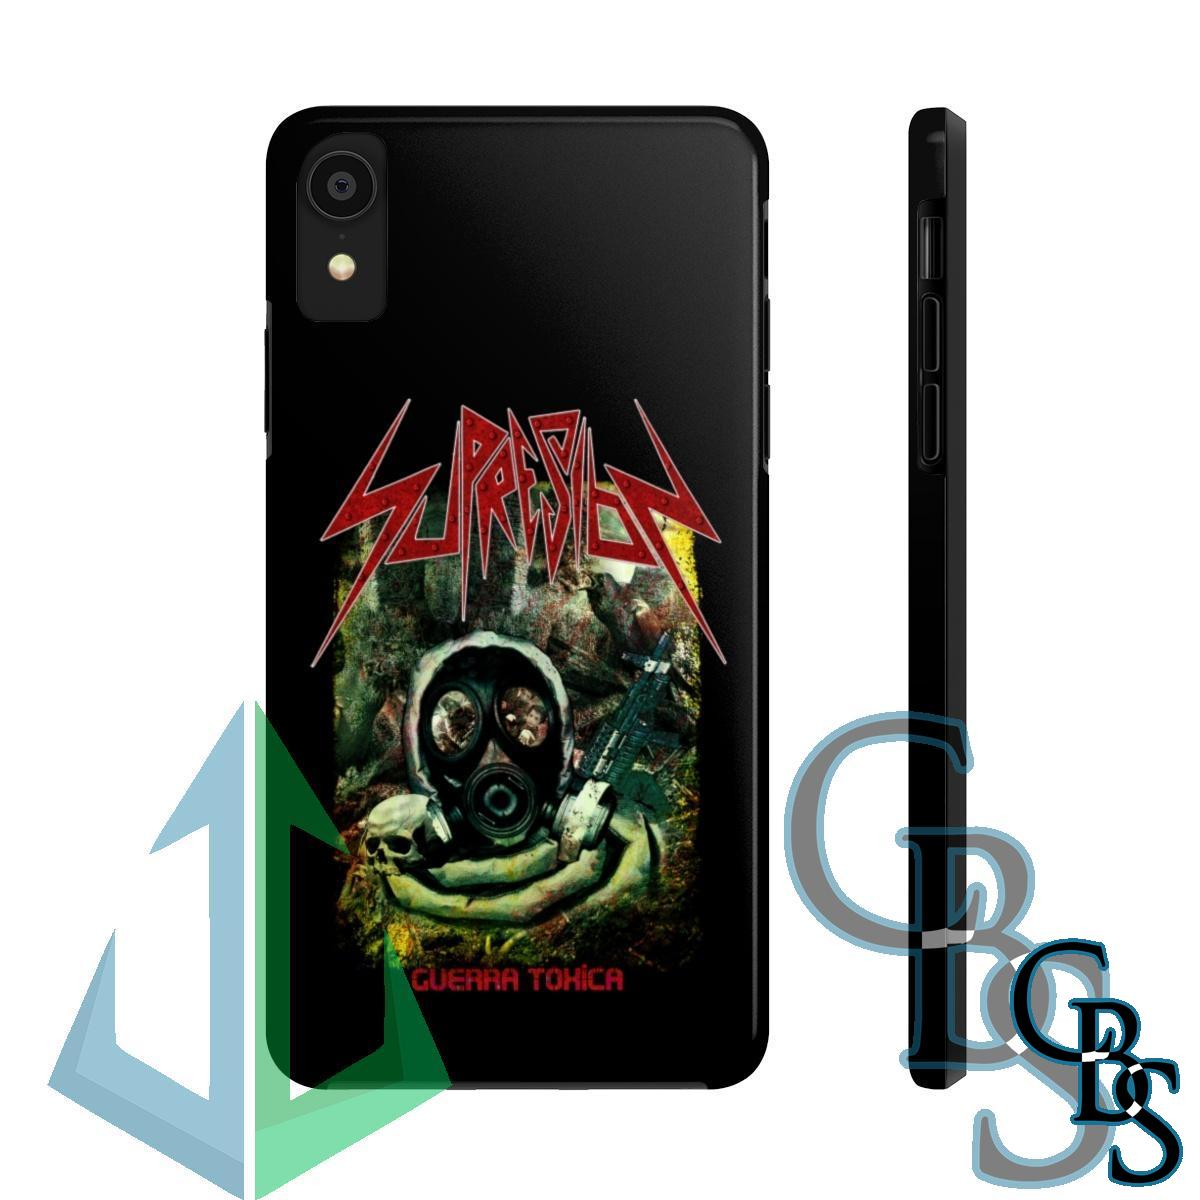 Supresion – Guerra Toxica iPhone Cases (iPhone 7/7 Plus, iPhone 8/8 Plus, iPhone X, XS, XR, iPhone 11, 11 Pro, 11 Pro Max)